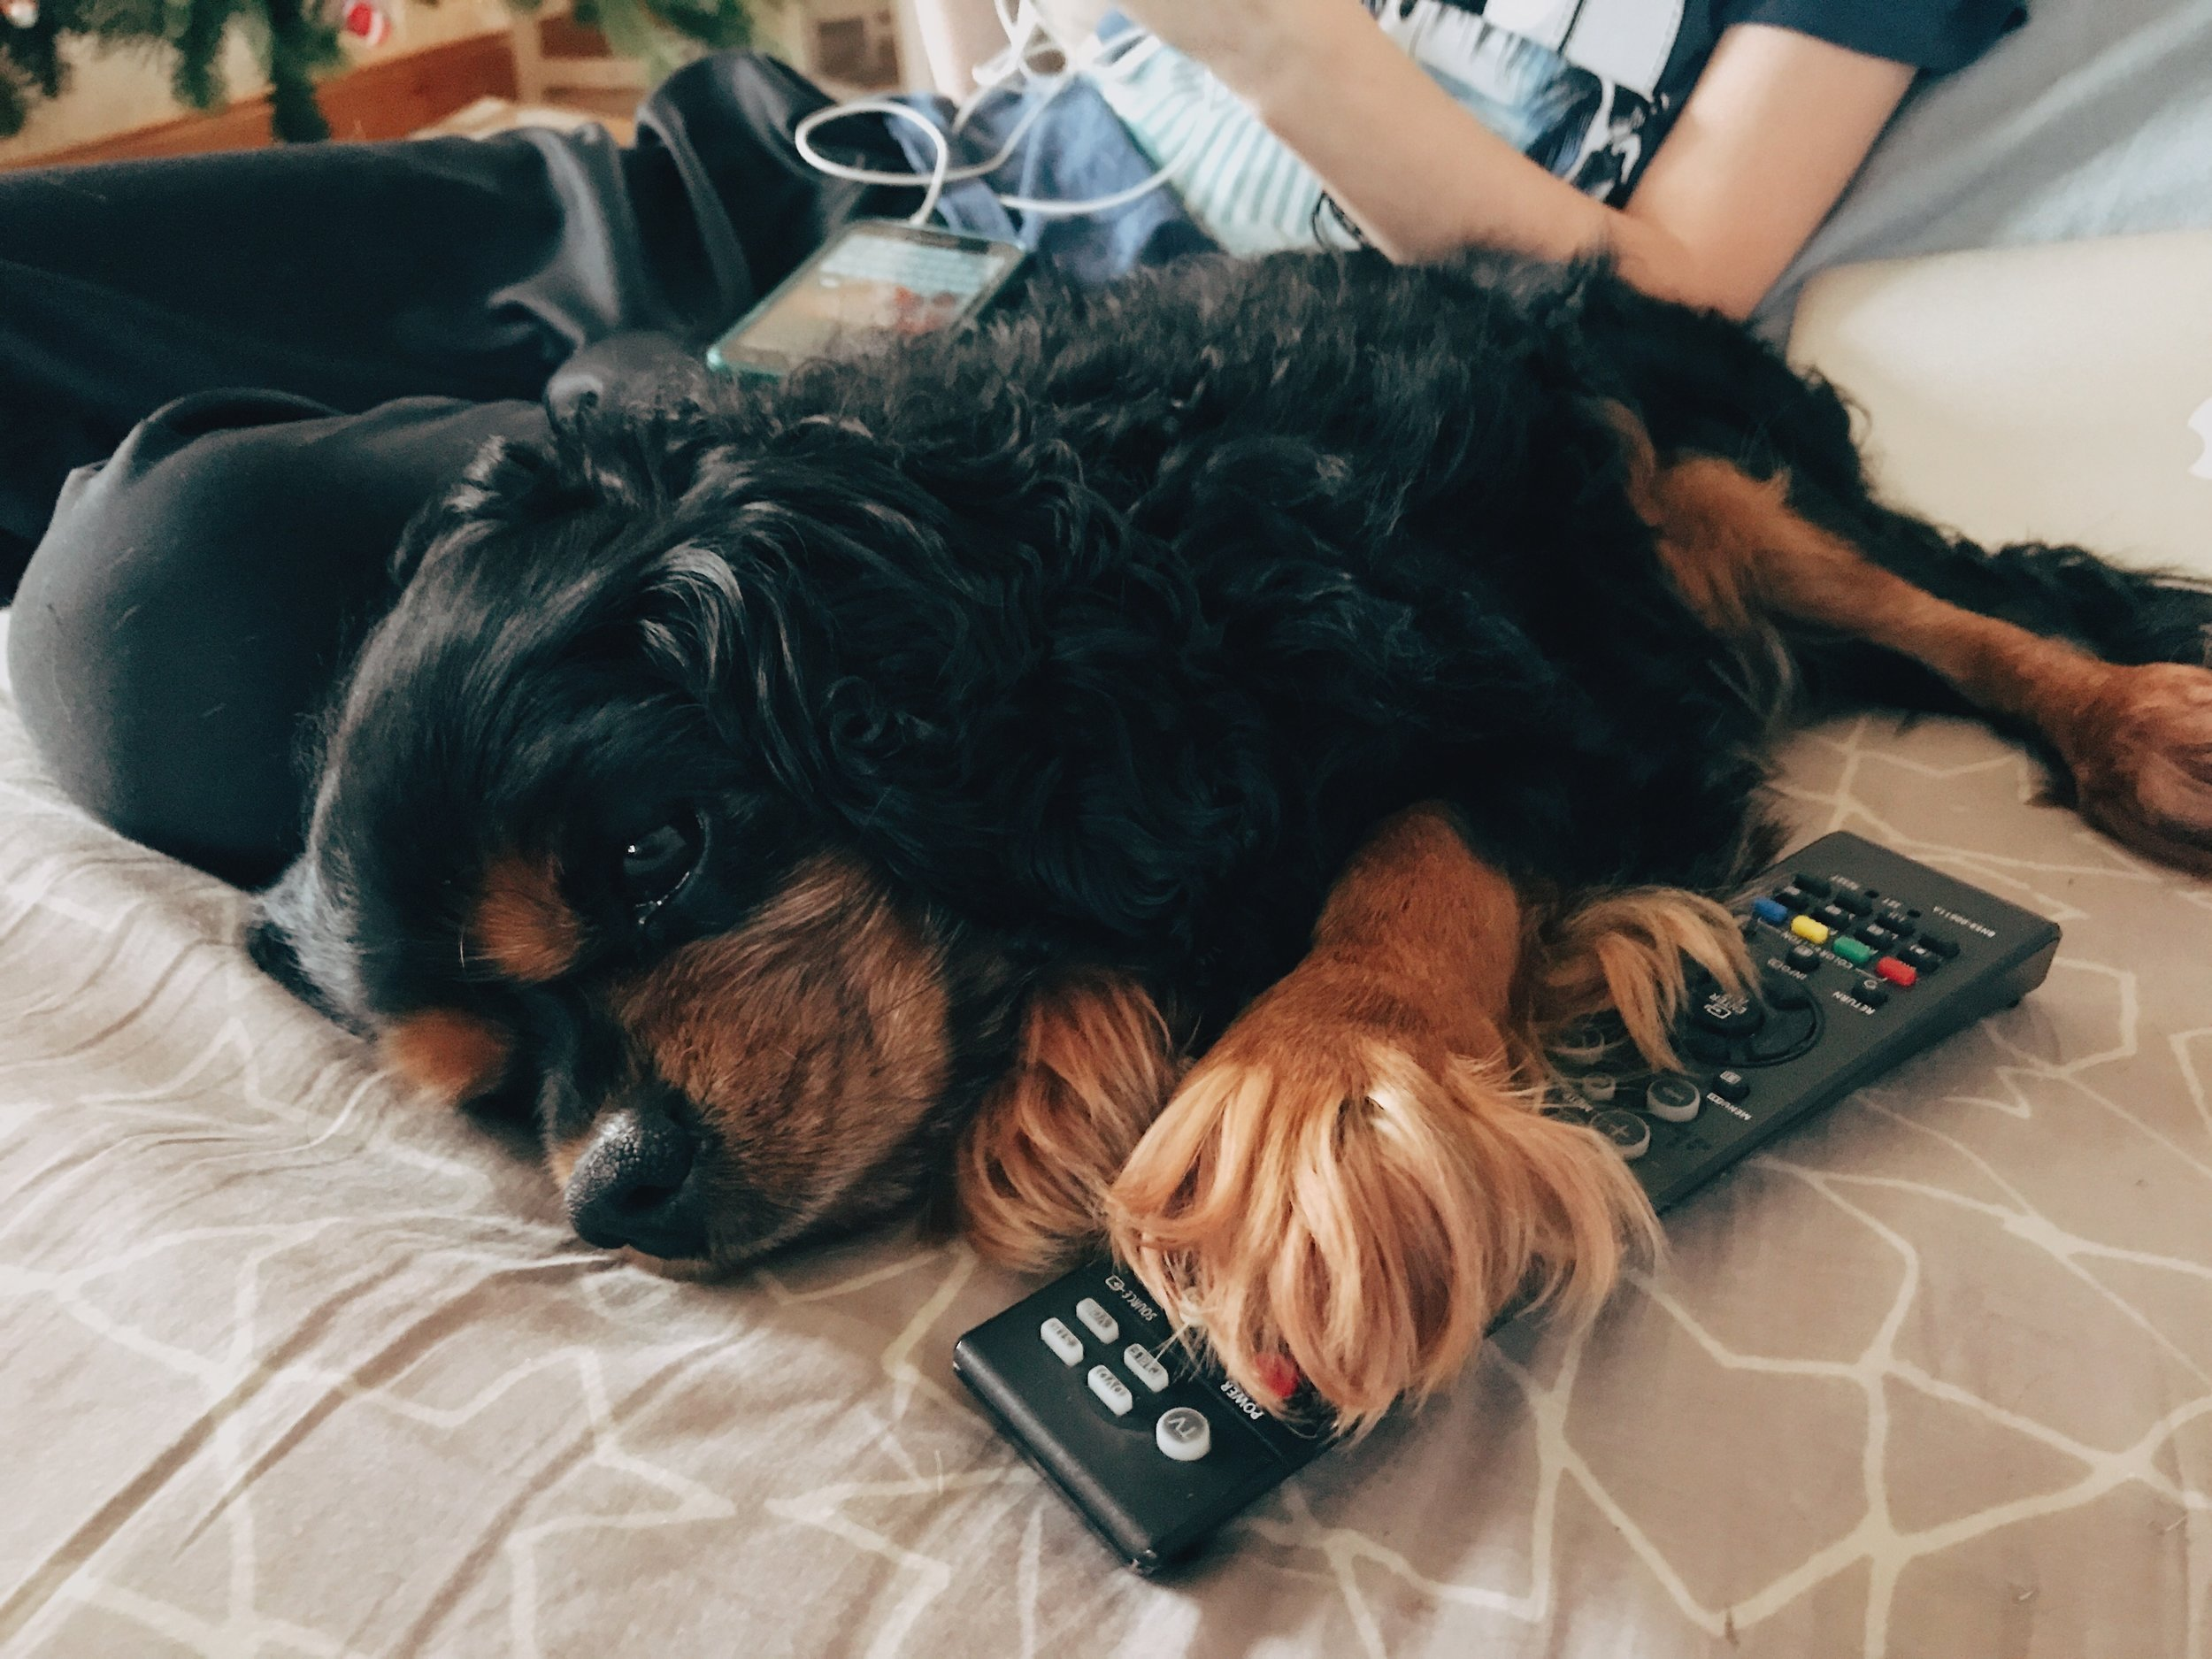 Wee goofball used to sleep on top of or hold on to the TV remote so that if you wanted to change the channel you had to give him some attention first.